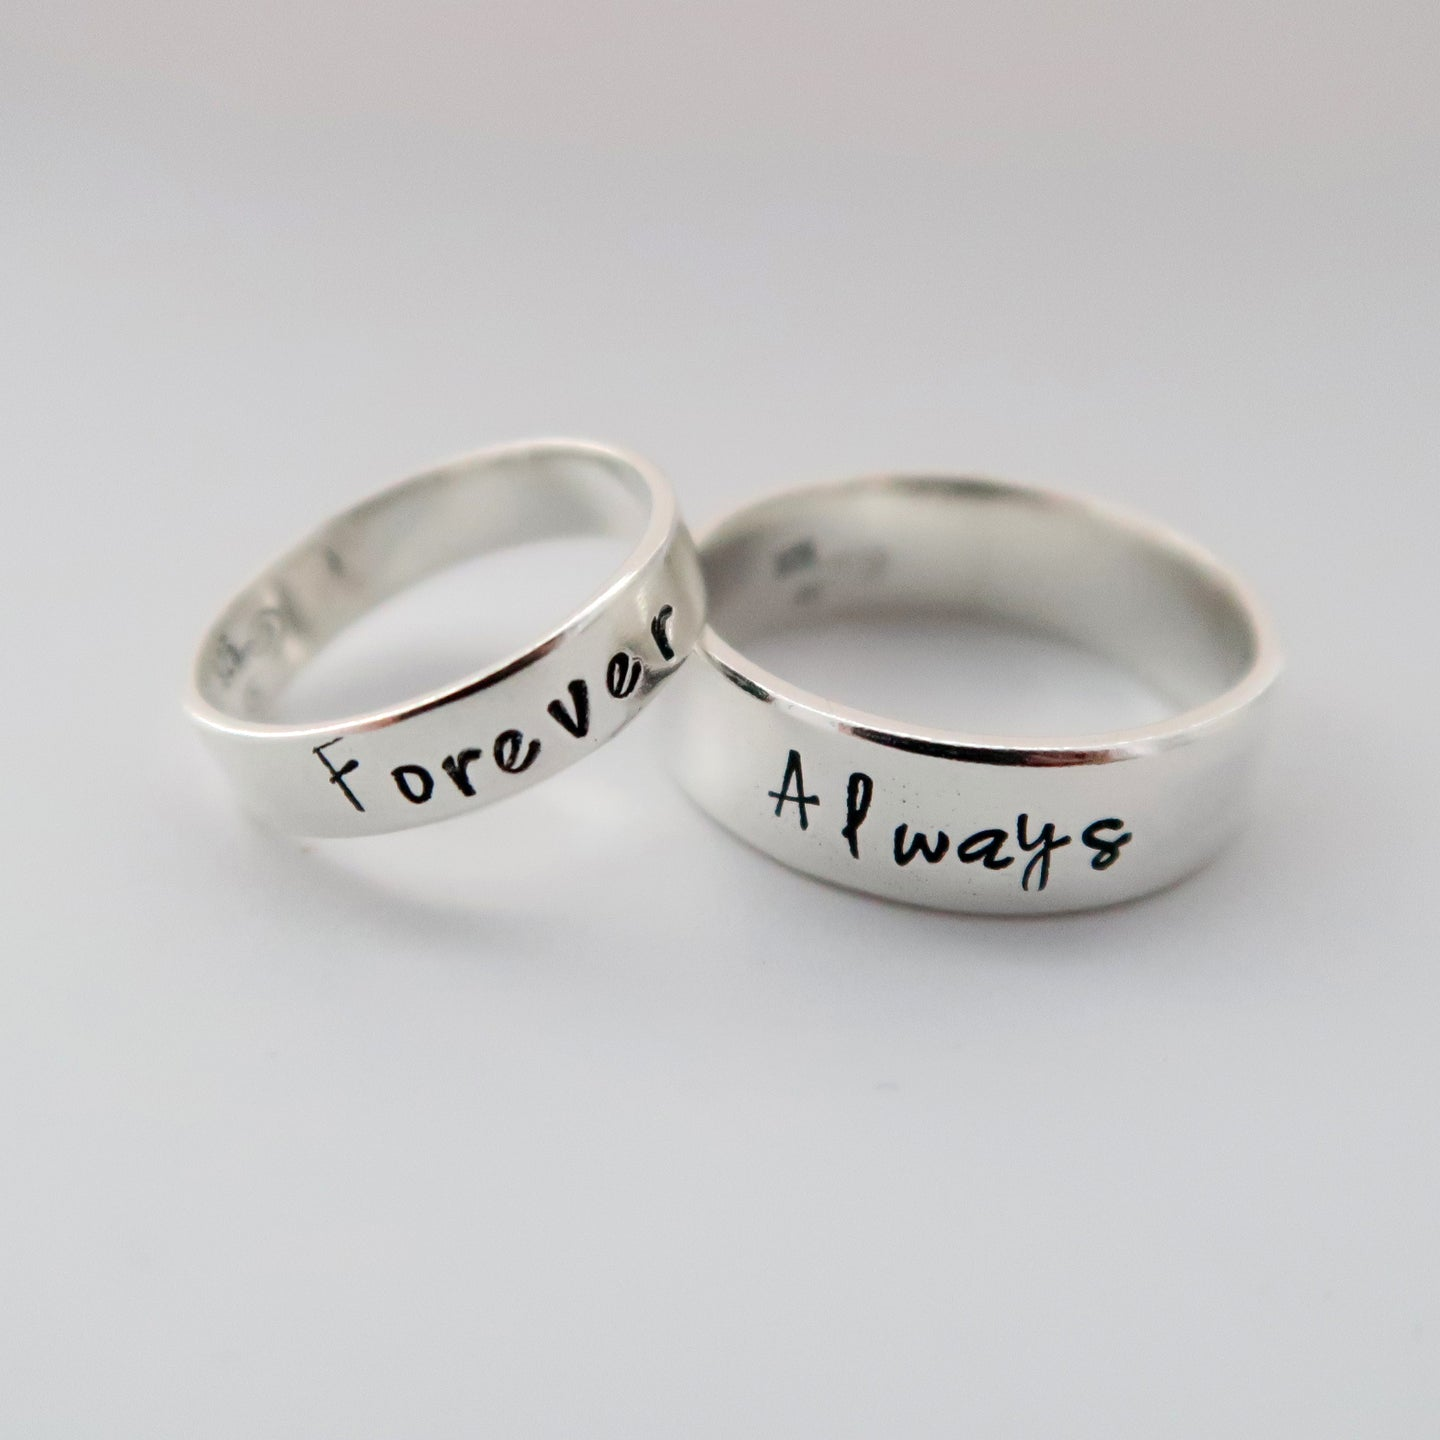 Personalised sterling silver couple rings made in wales uk by elfen hardd